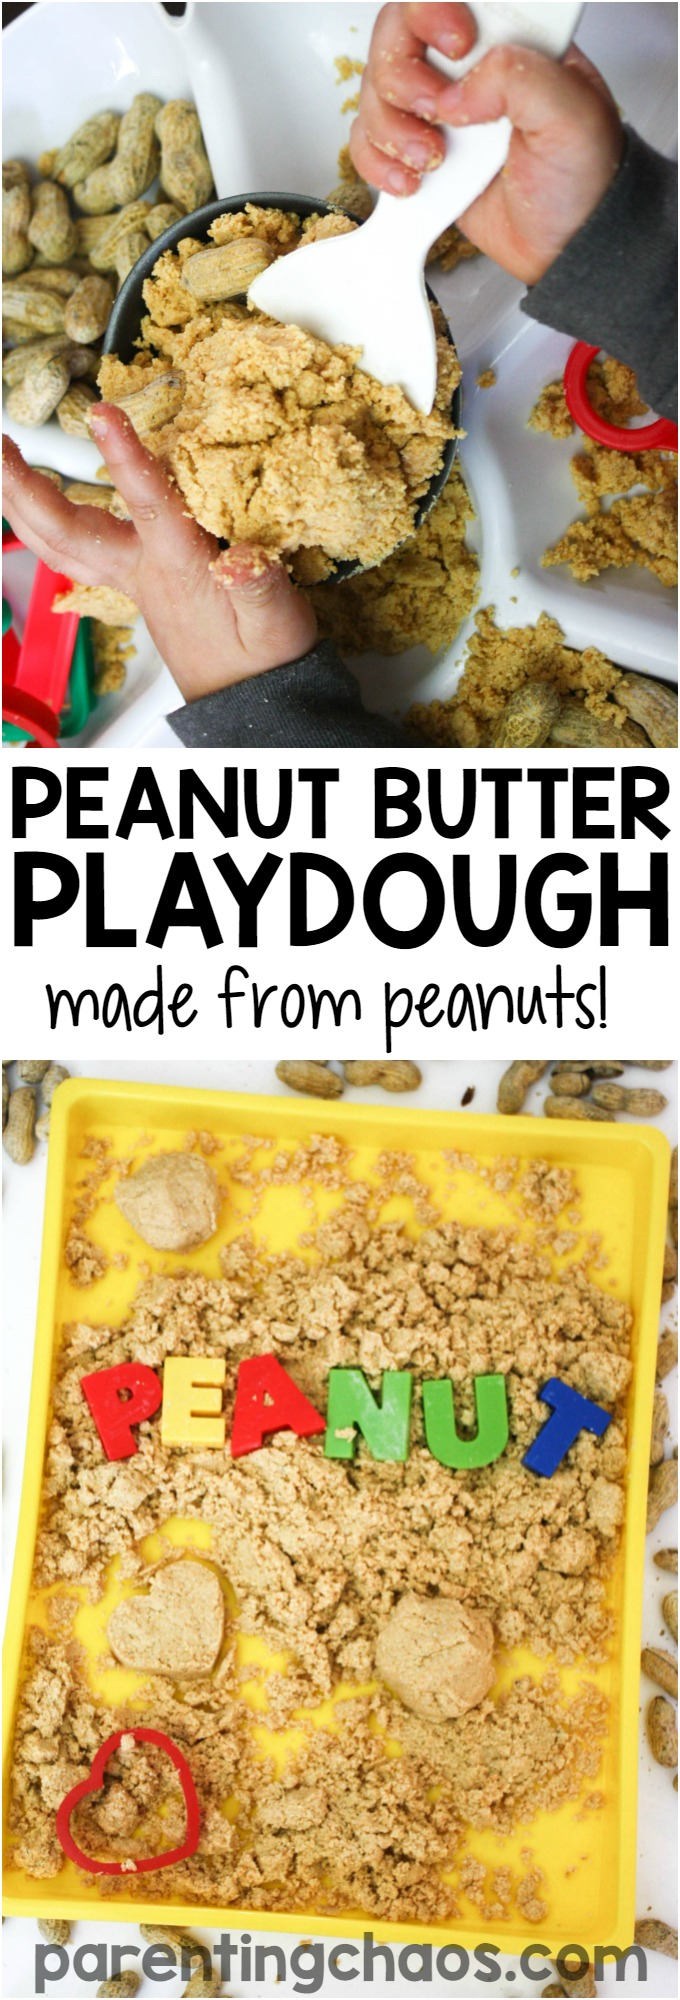 Kids will have a blast learning how to make peanut butter as they create this fantastic sensory recipe - Peanut Butter Playdough! I had no clue that you could make this from scratch so easily!